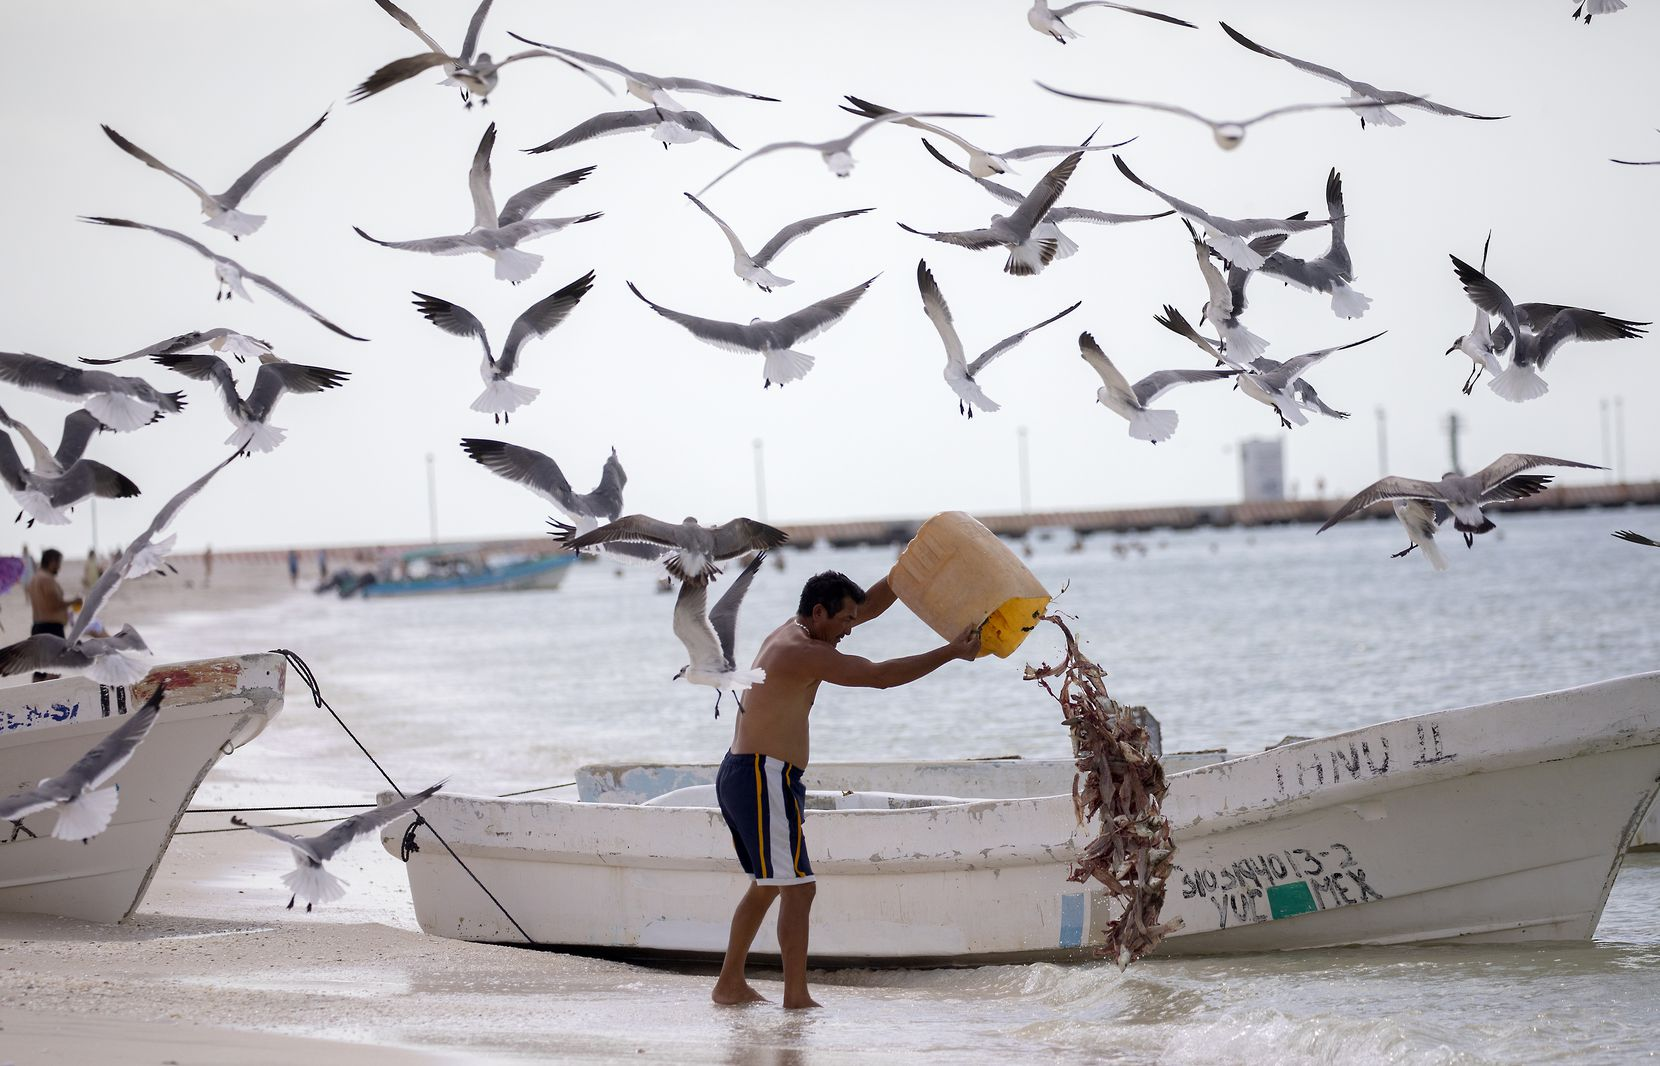 A local fisherman dumps the remains of his daily catch in the fishing town of Celestún.